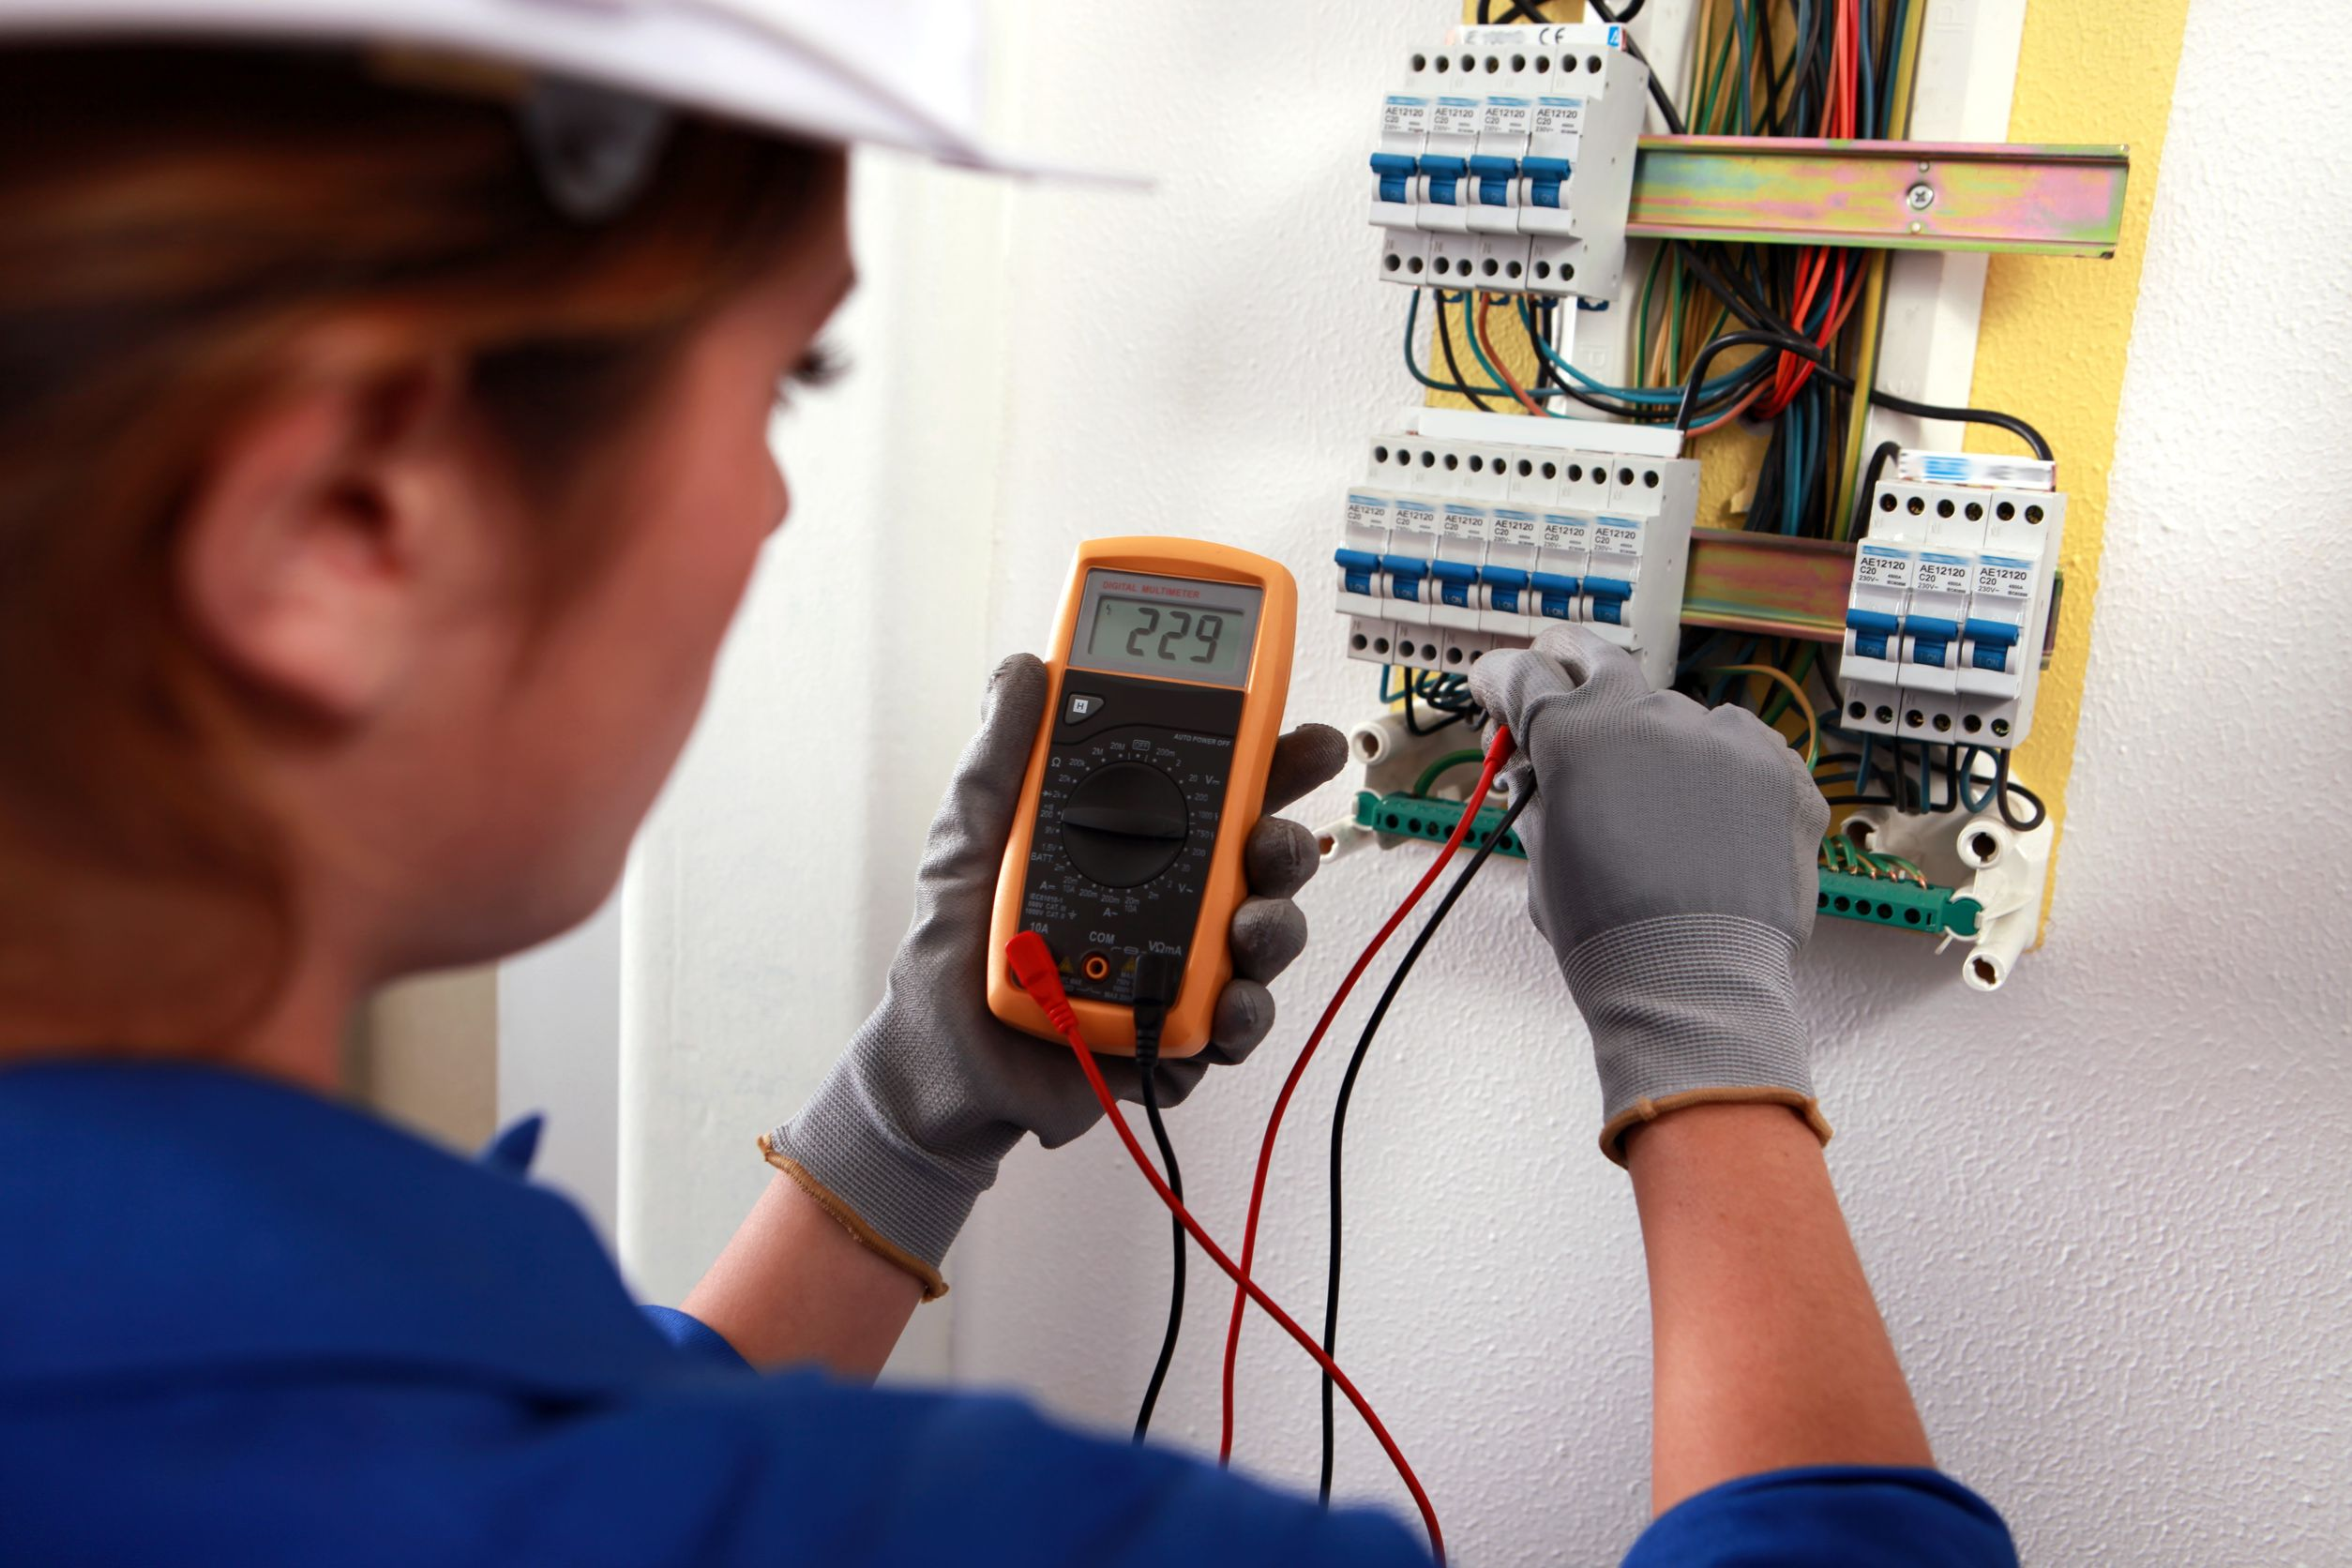 hurst electrical lighting repair services in dfw peerless rh peerlesselectricdfw com electrical wiring classes online electrical wiring courses in montana